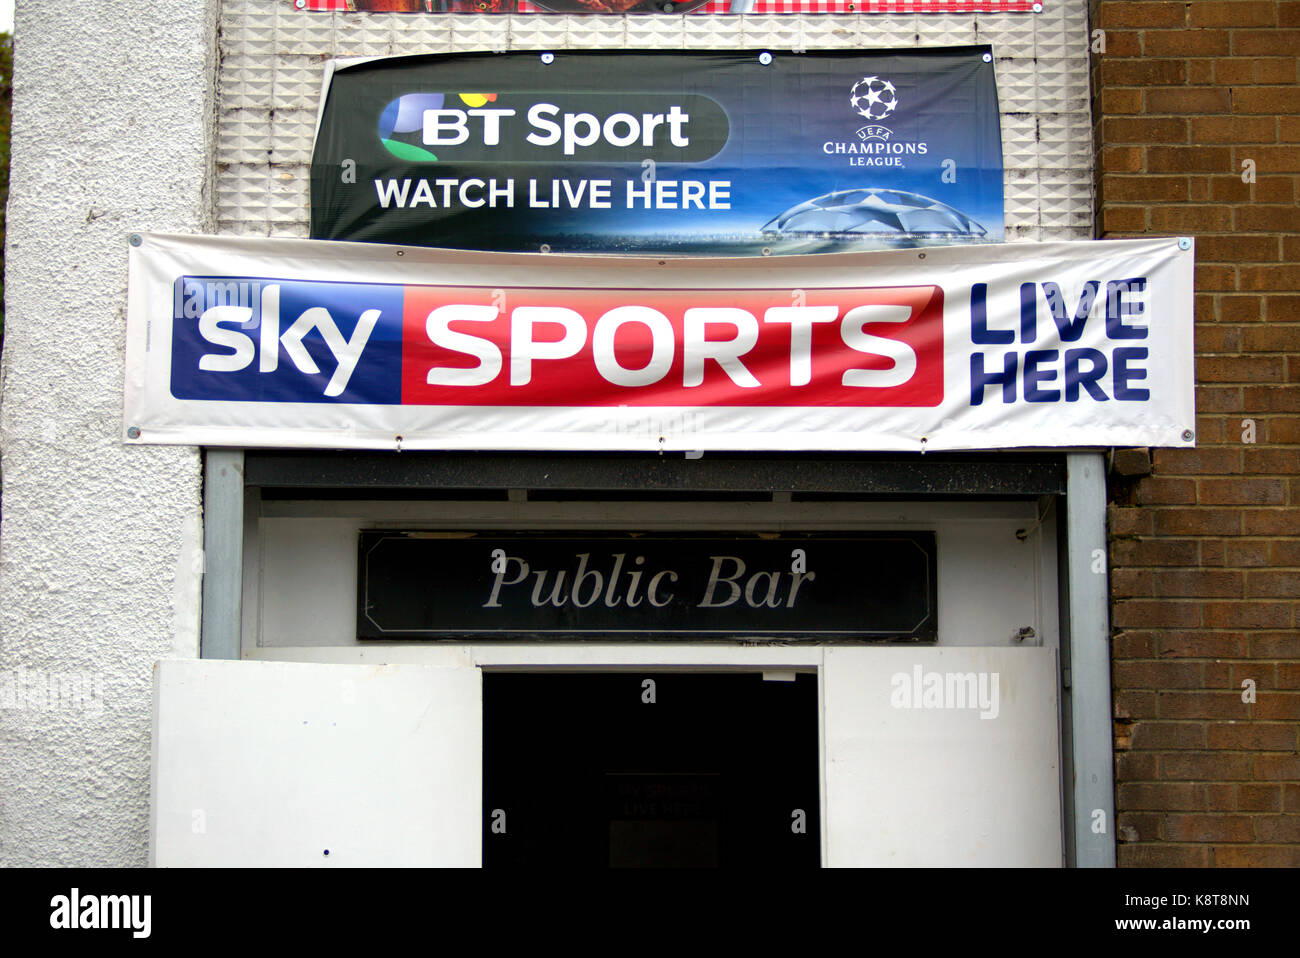 sky sports bt sport love football pub adverts watch live here banners - Stock Image